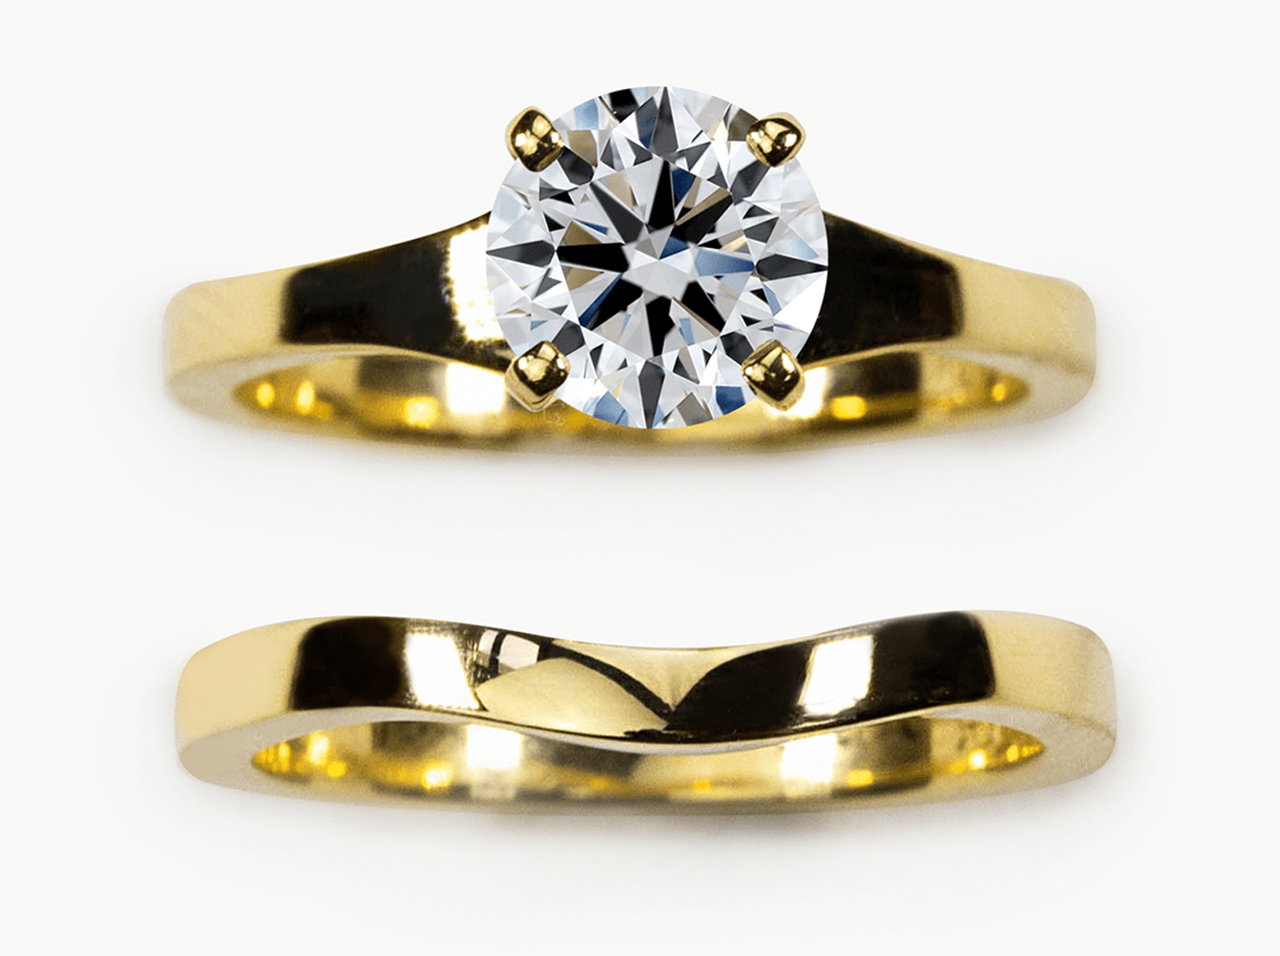 Find your matching Wedding Band